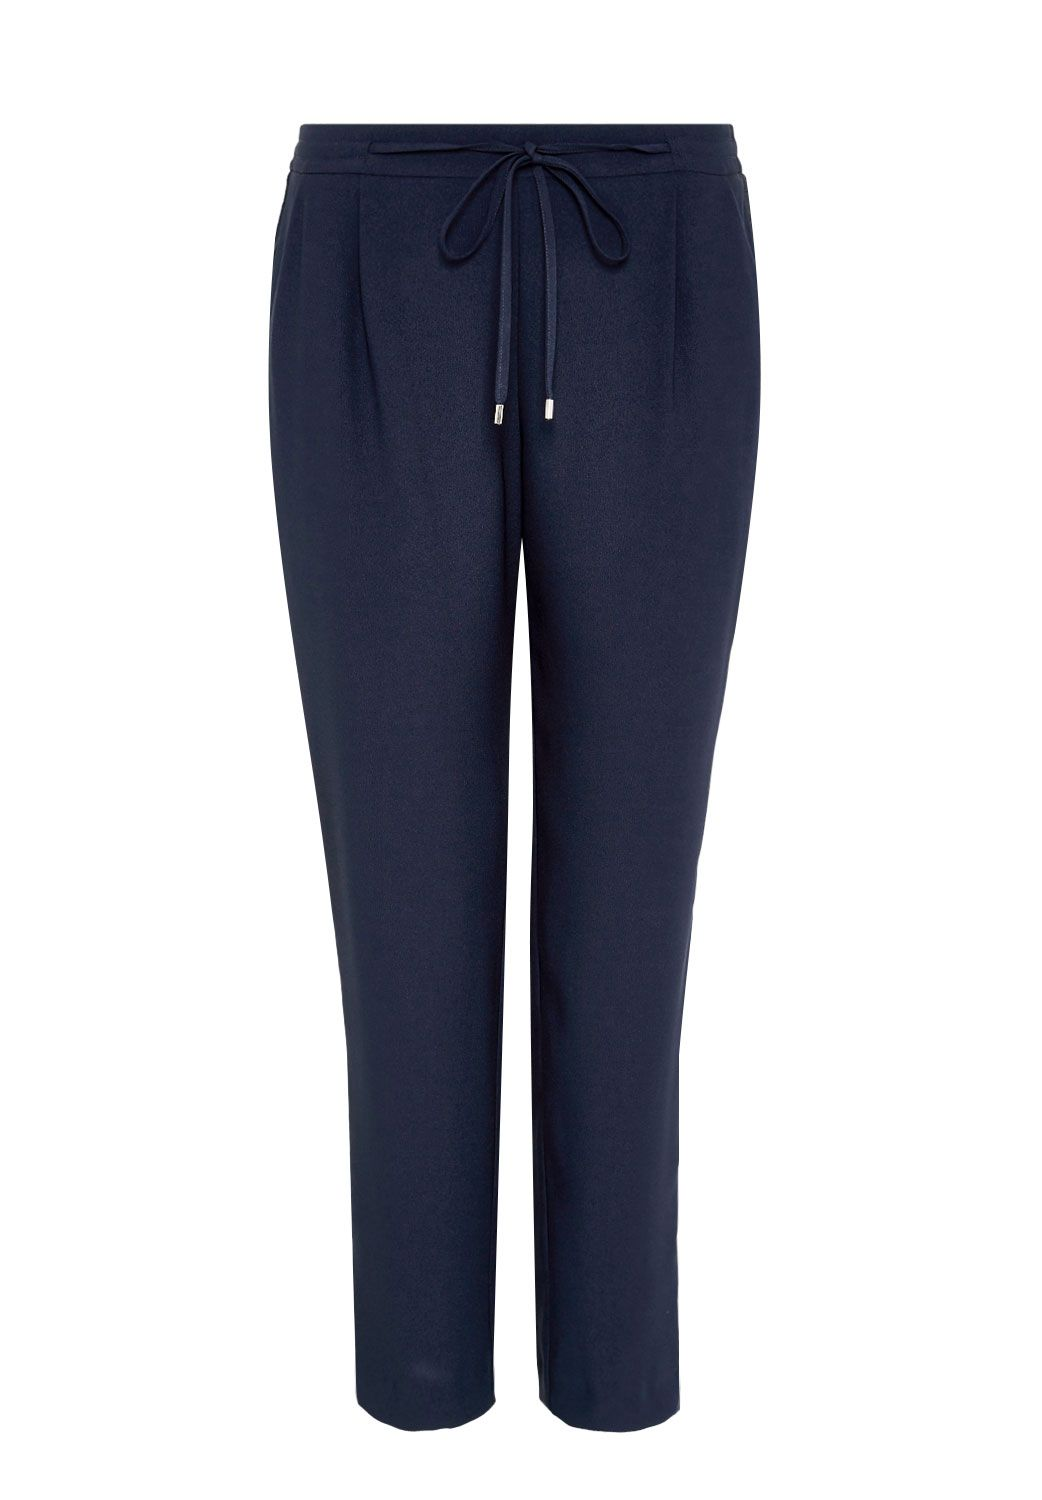 Hallhuber Tracksuit bottoms with Lurex side stripe, Blue